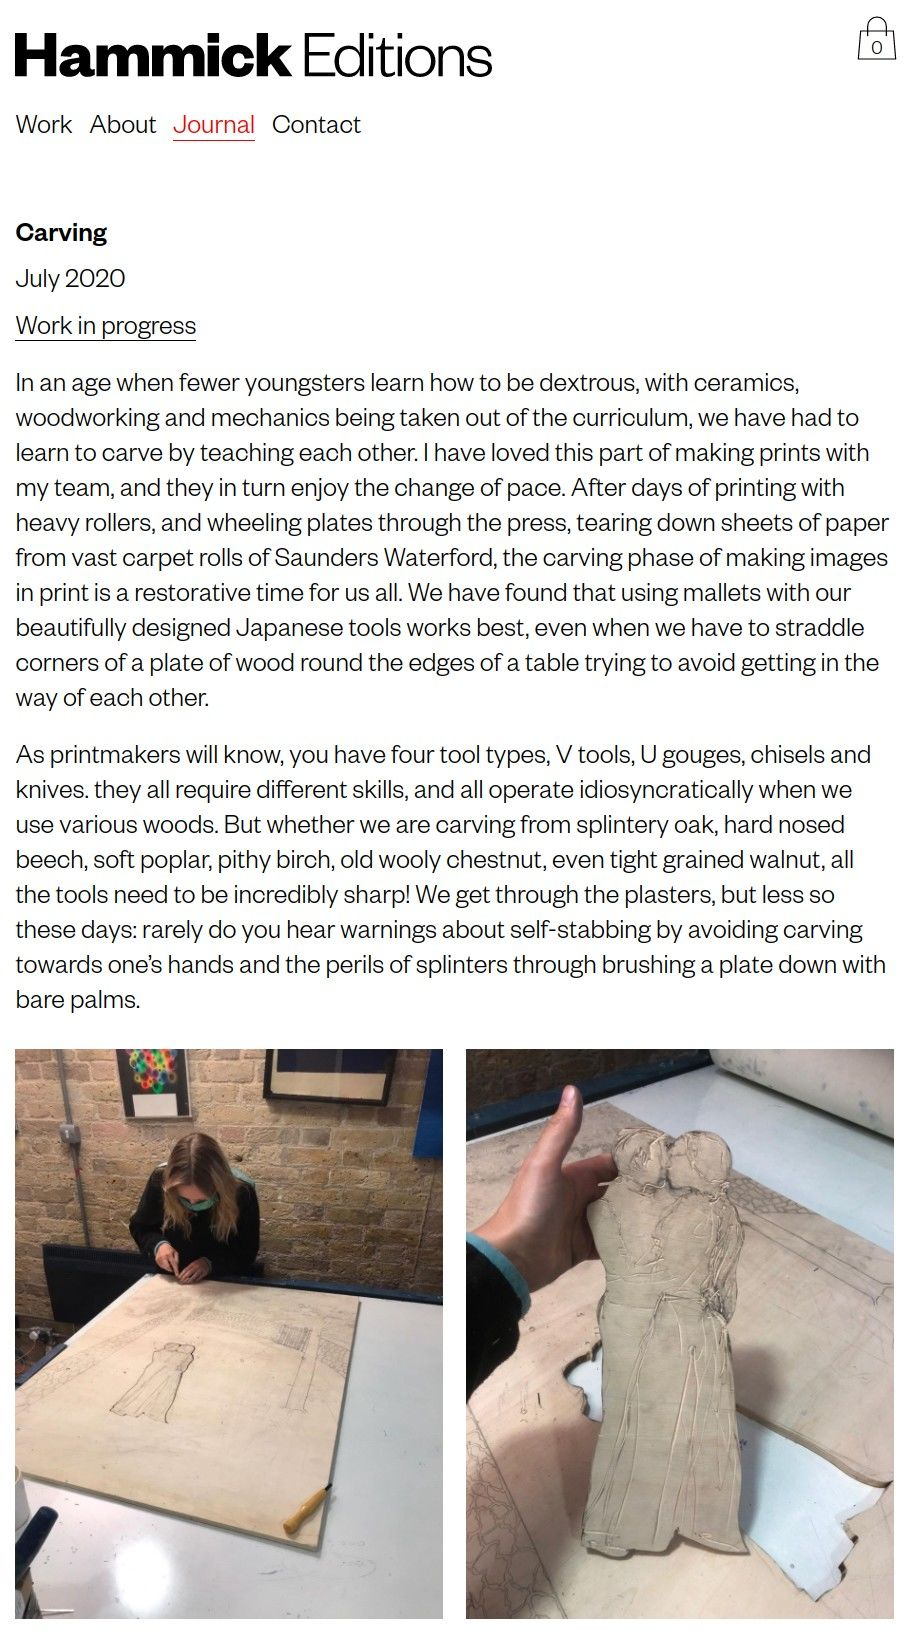 mobile view of journal post on carving for printmaking.